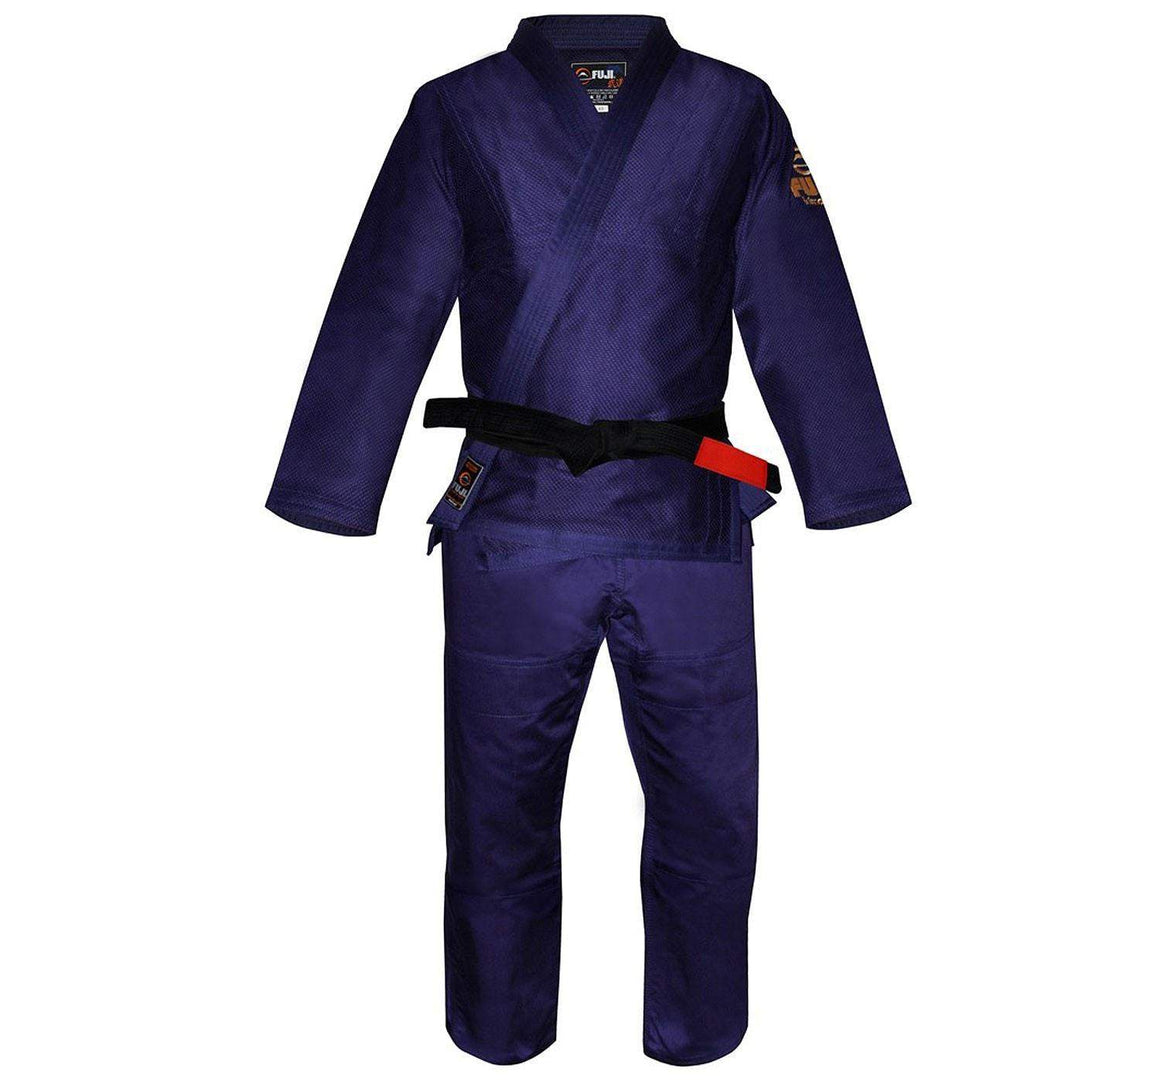 Fuji All Around Kids BJJ Gi - Navy